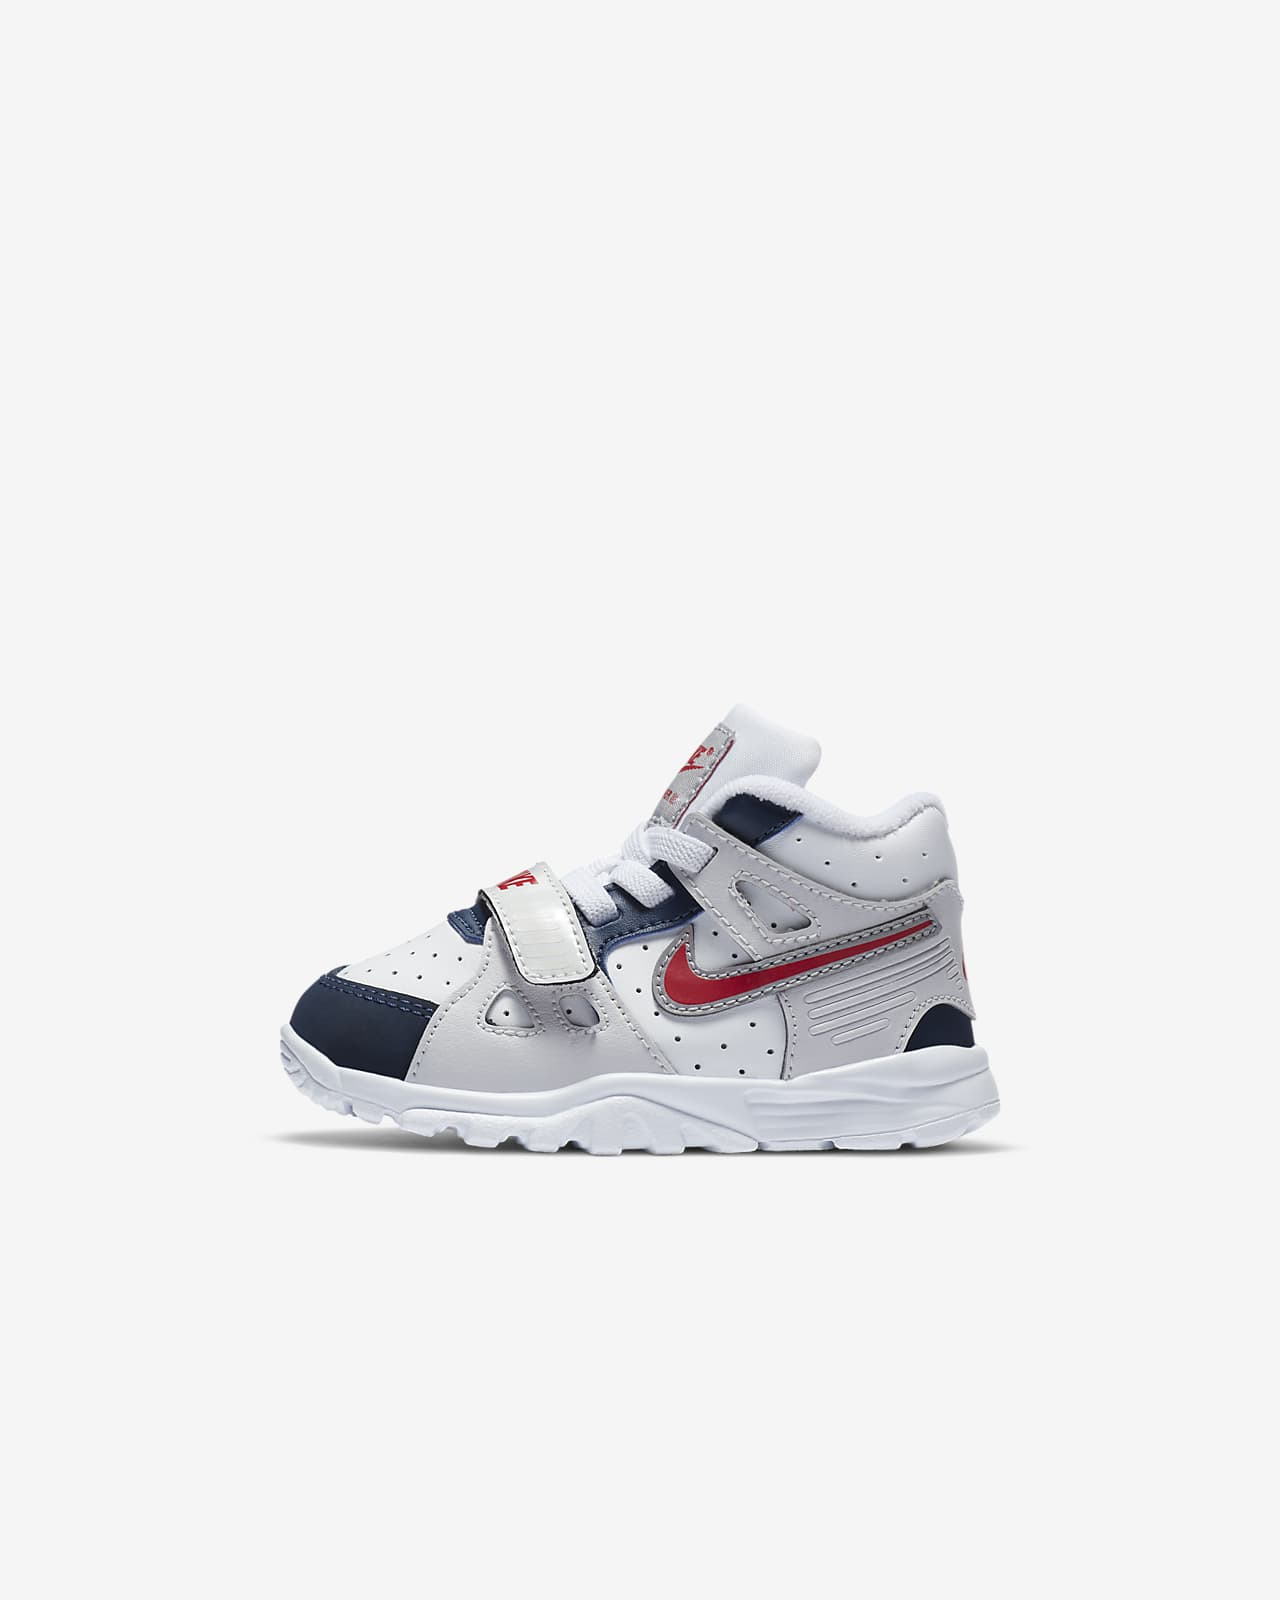 Nike Trainer 3 Baby and Toddler Shoe